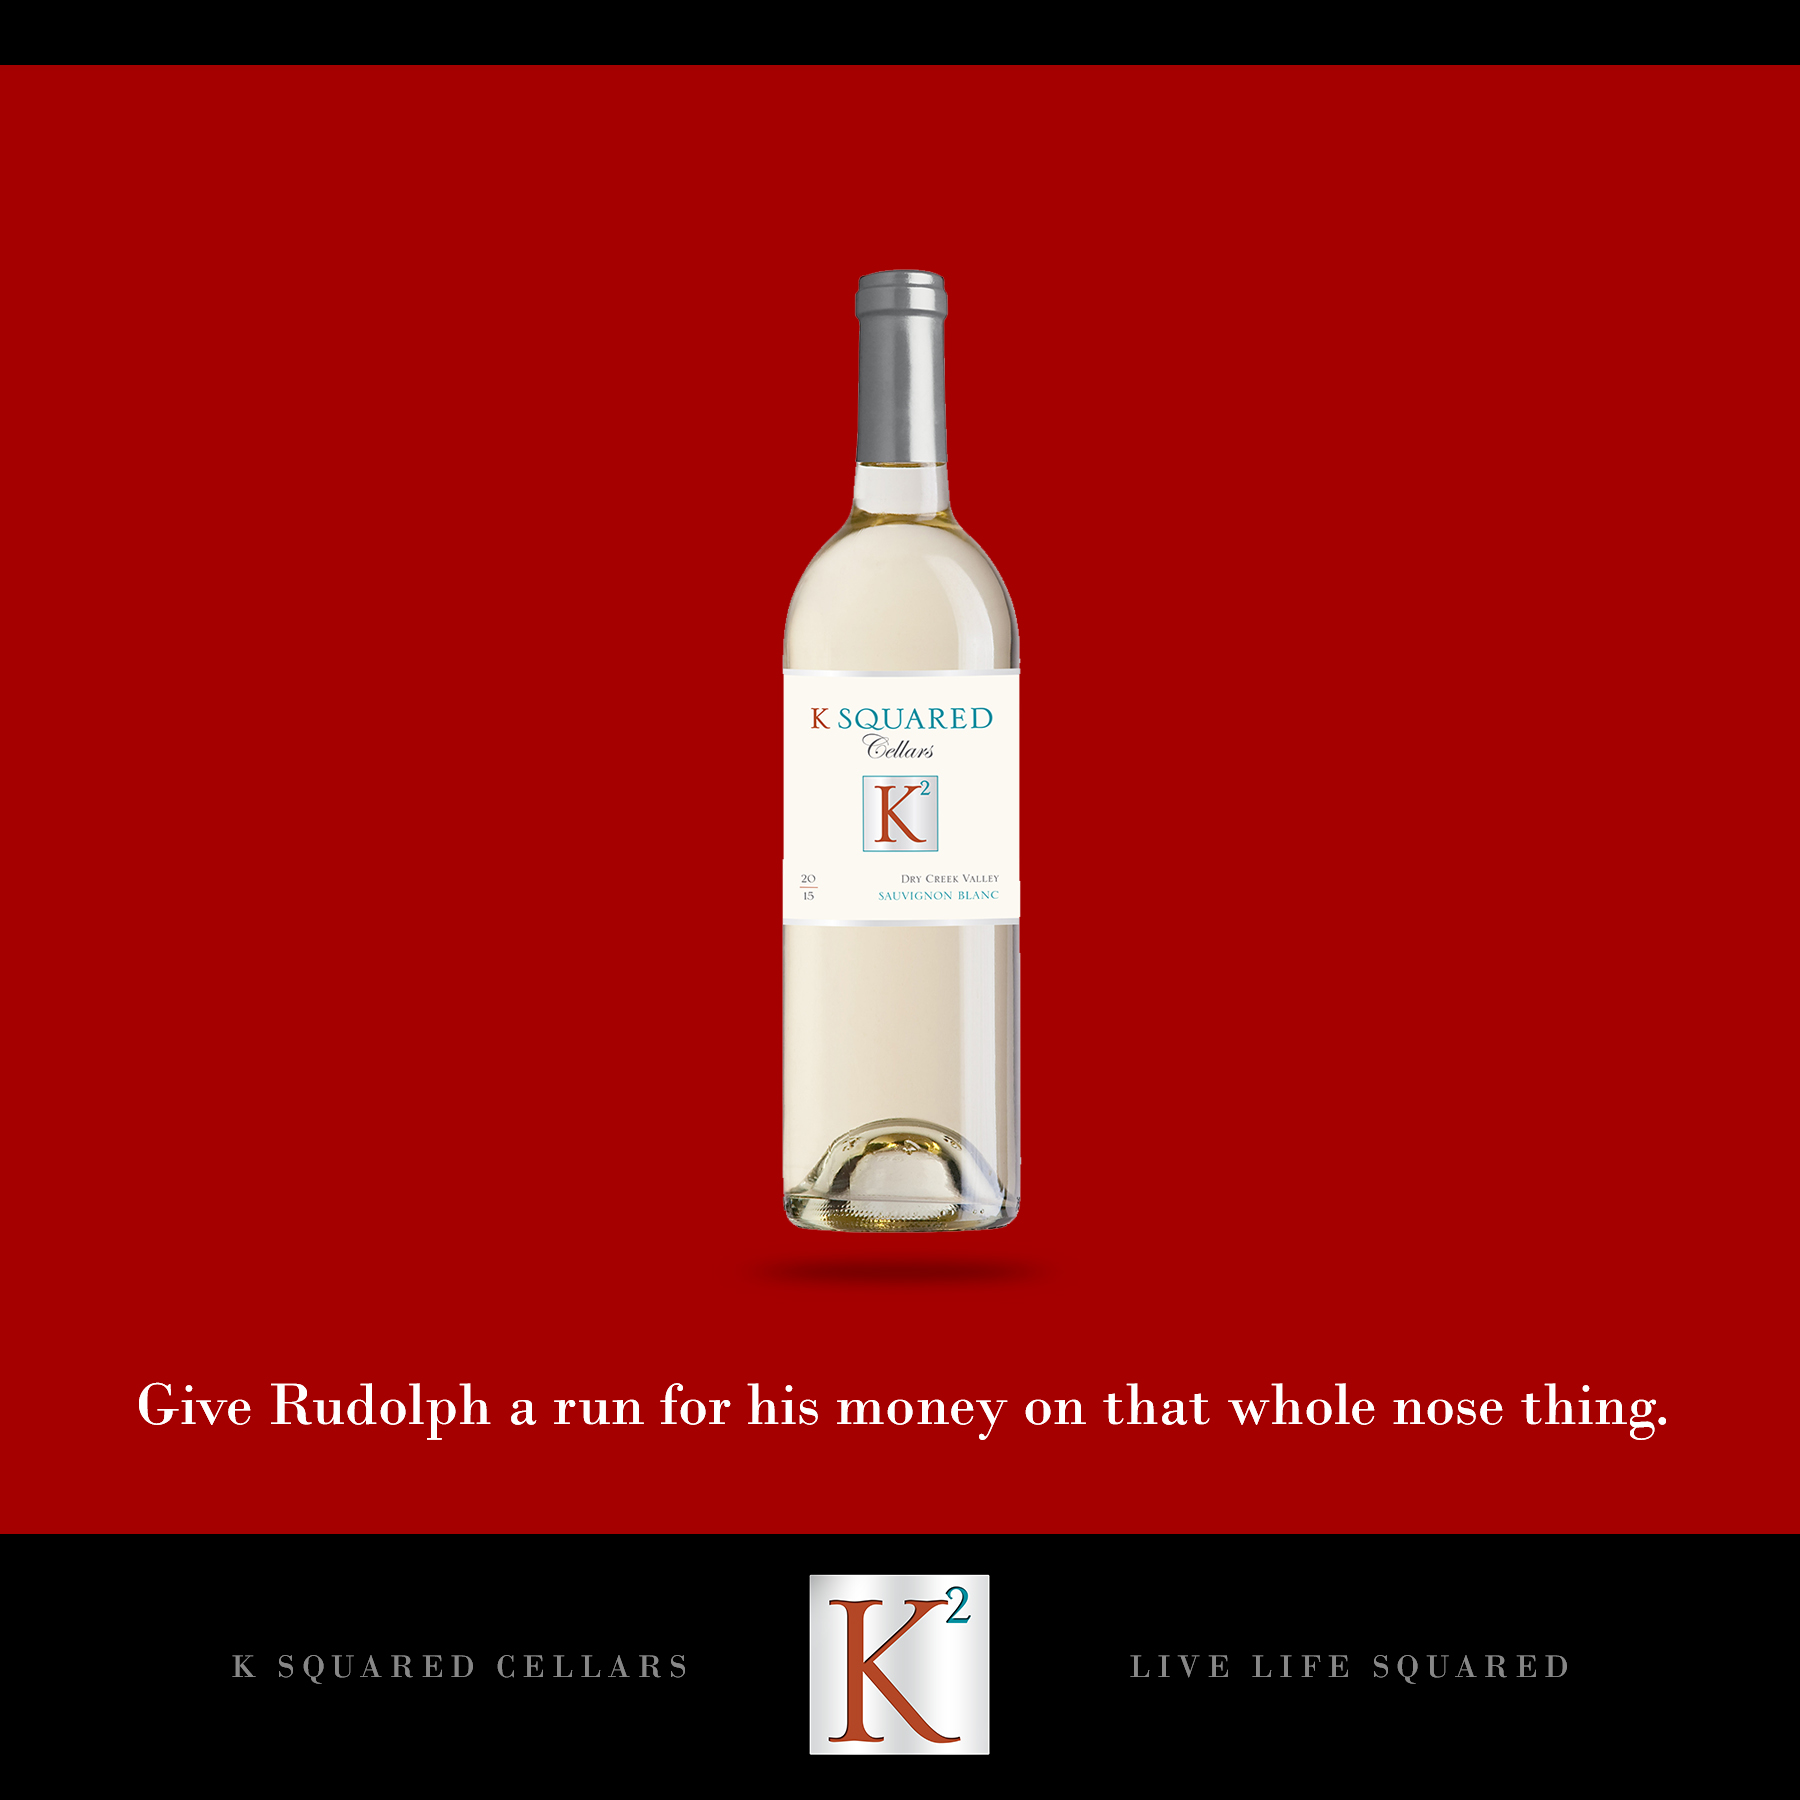 K Squared Cellars RUDOPLH base by Graham Hnedak Brand G Creative 22 NOV 2016.jpg